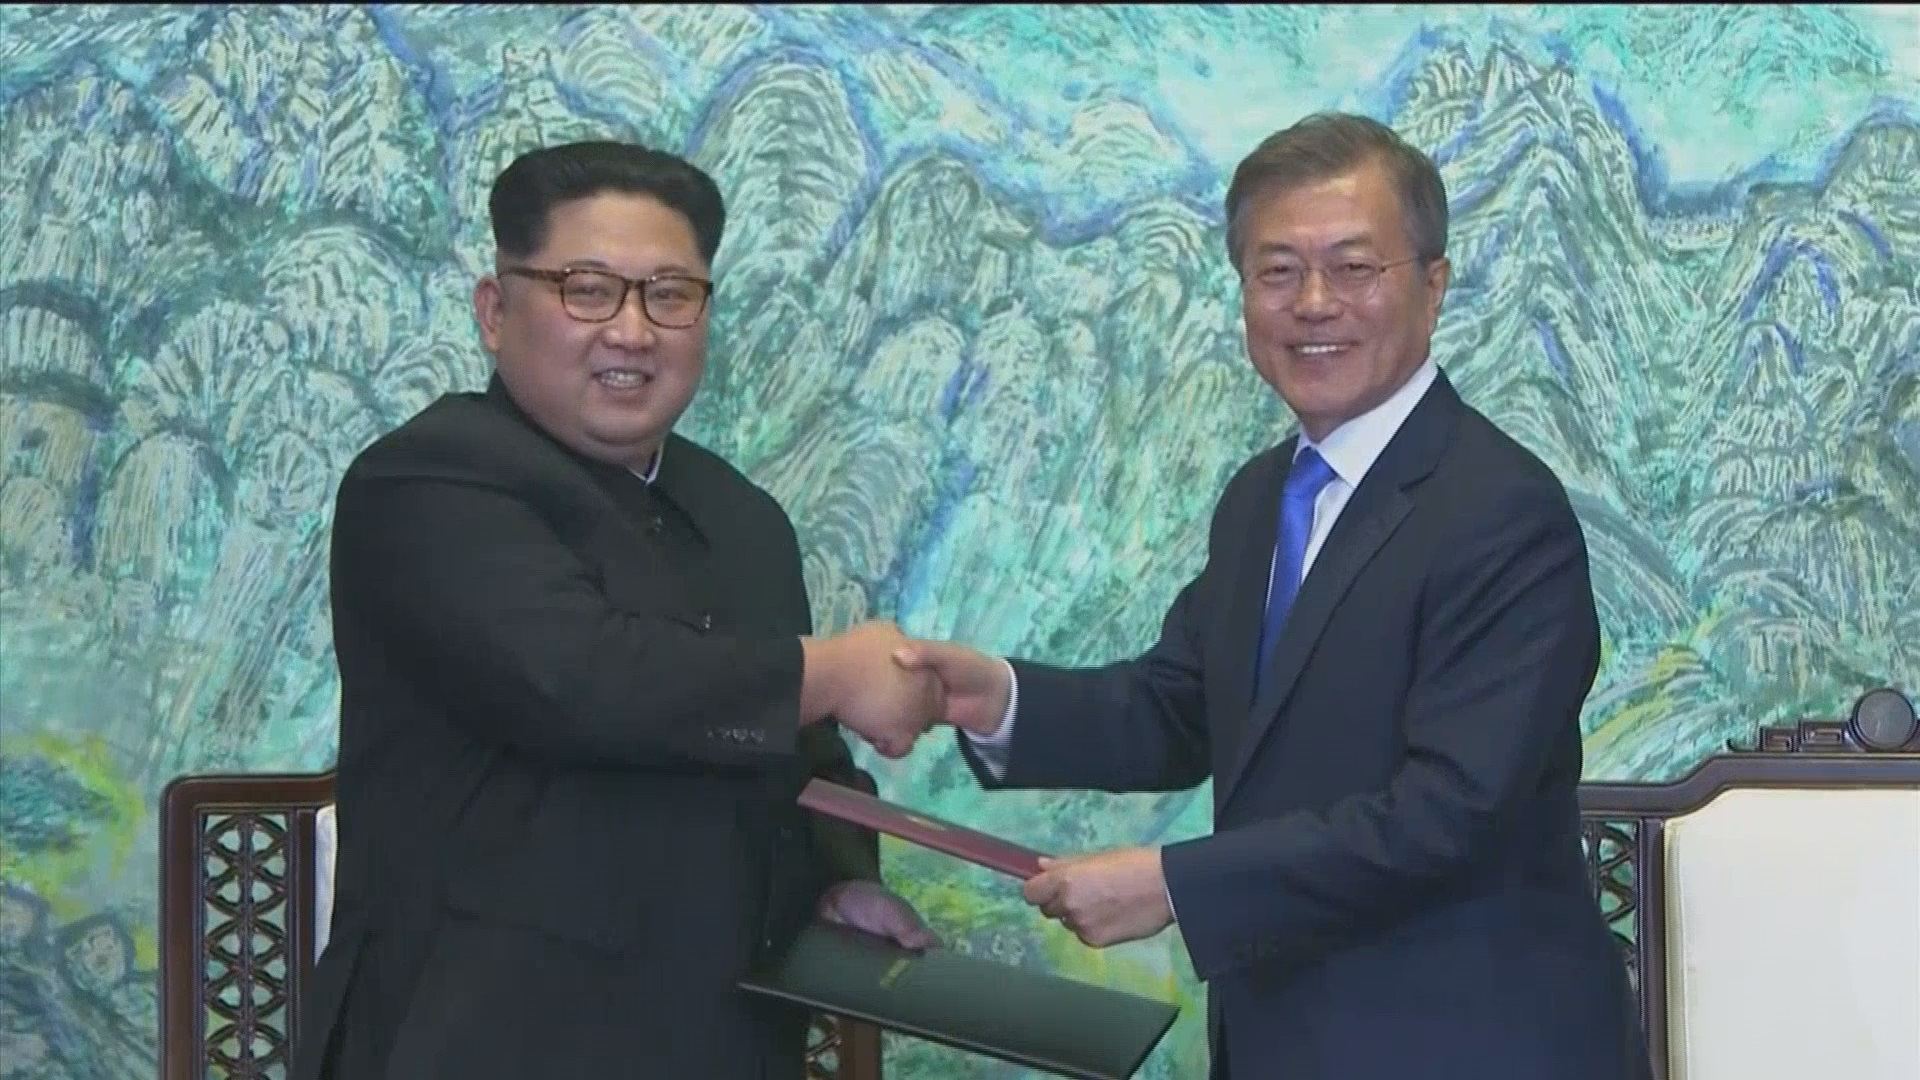 korean_summit2_1524825941782.jpg